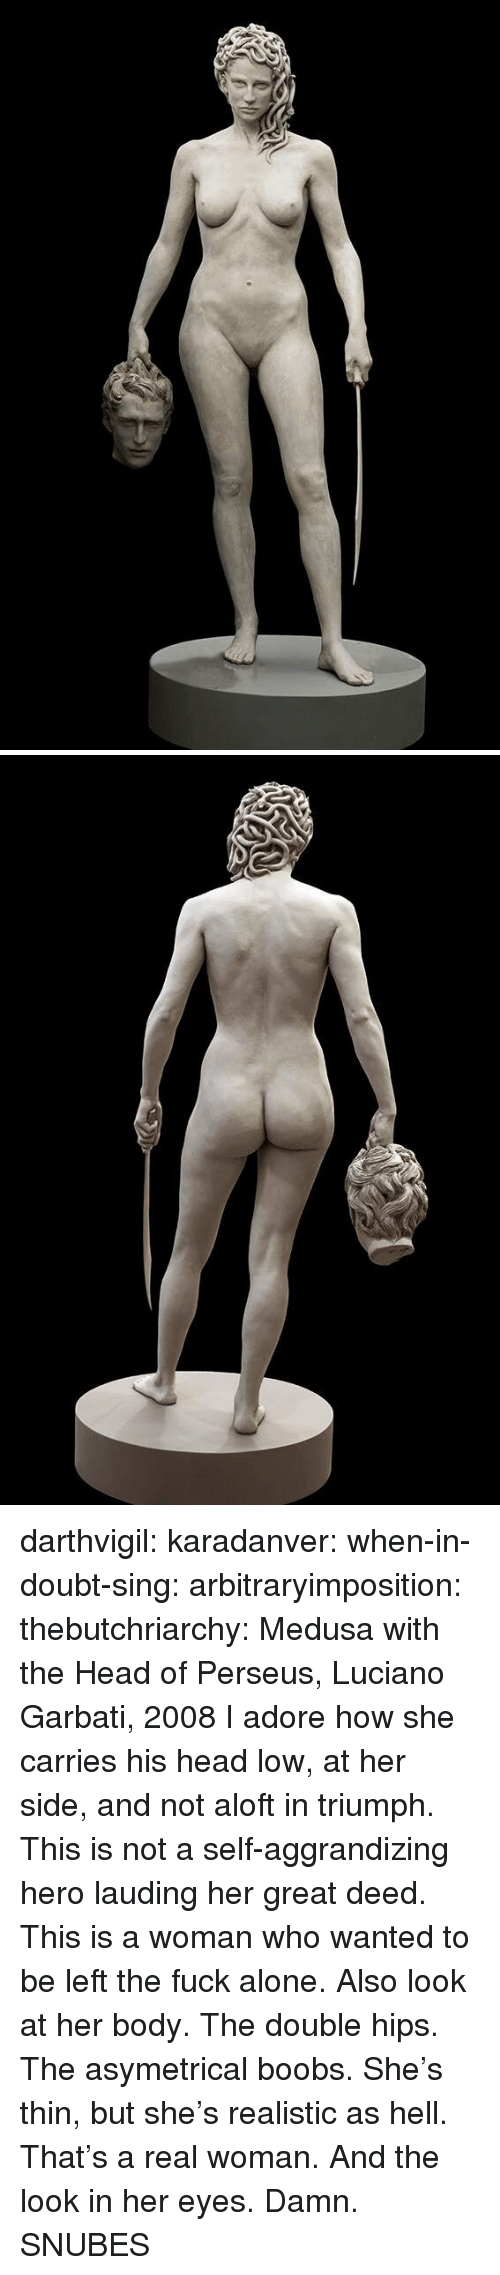 deed: darthvigil: karadanver:  when-in-doubt-sing:  arbitraryimposition:  thebutchriarchy: Medusa with the Head of Perseus, Luciano Garbati, 2008 I adore how she carries his head low, at her side, and not aloft in triumph.  This is not a self-aggrandizing hero lauding her great deed. This is a woman who wanted to be left the fuck alone.   Also look at her body. The double hips. The asymetrical boobs. She's thin, but she's realistic as hell. That's a real woman.  And the look in her eyes. Damn.      SNUBES